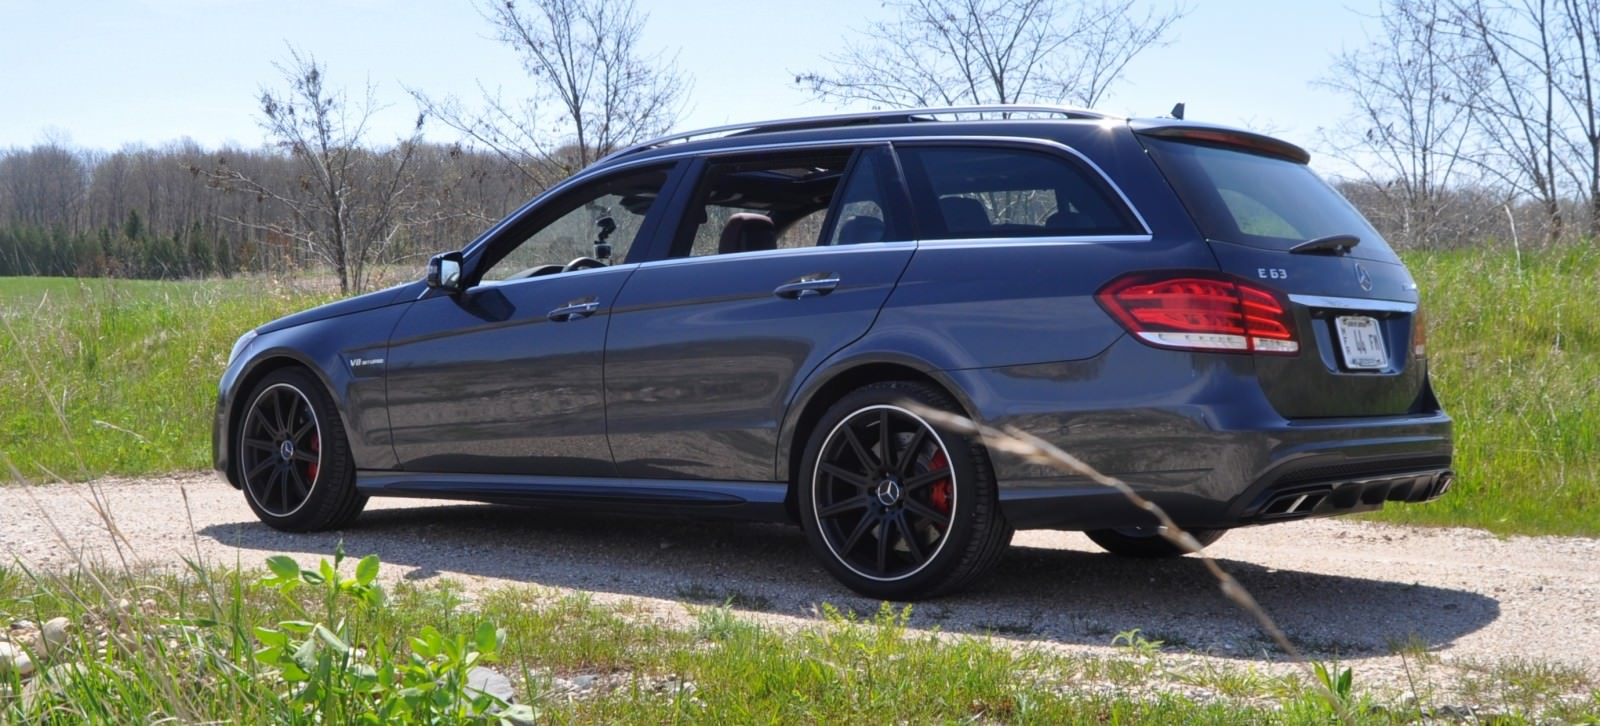 2014 mercedes benz e63 amg for Mercedes benz e63 amg price